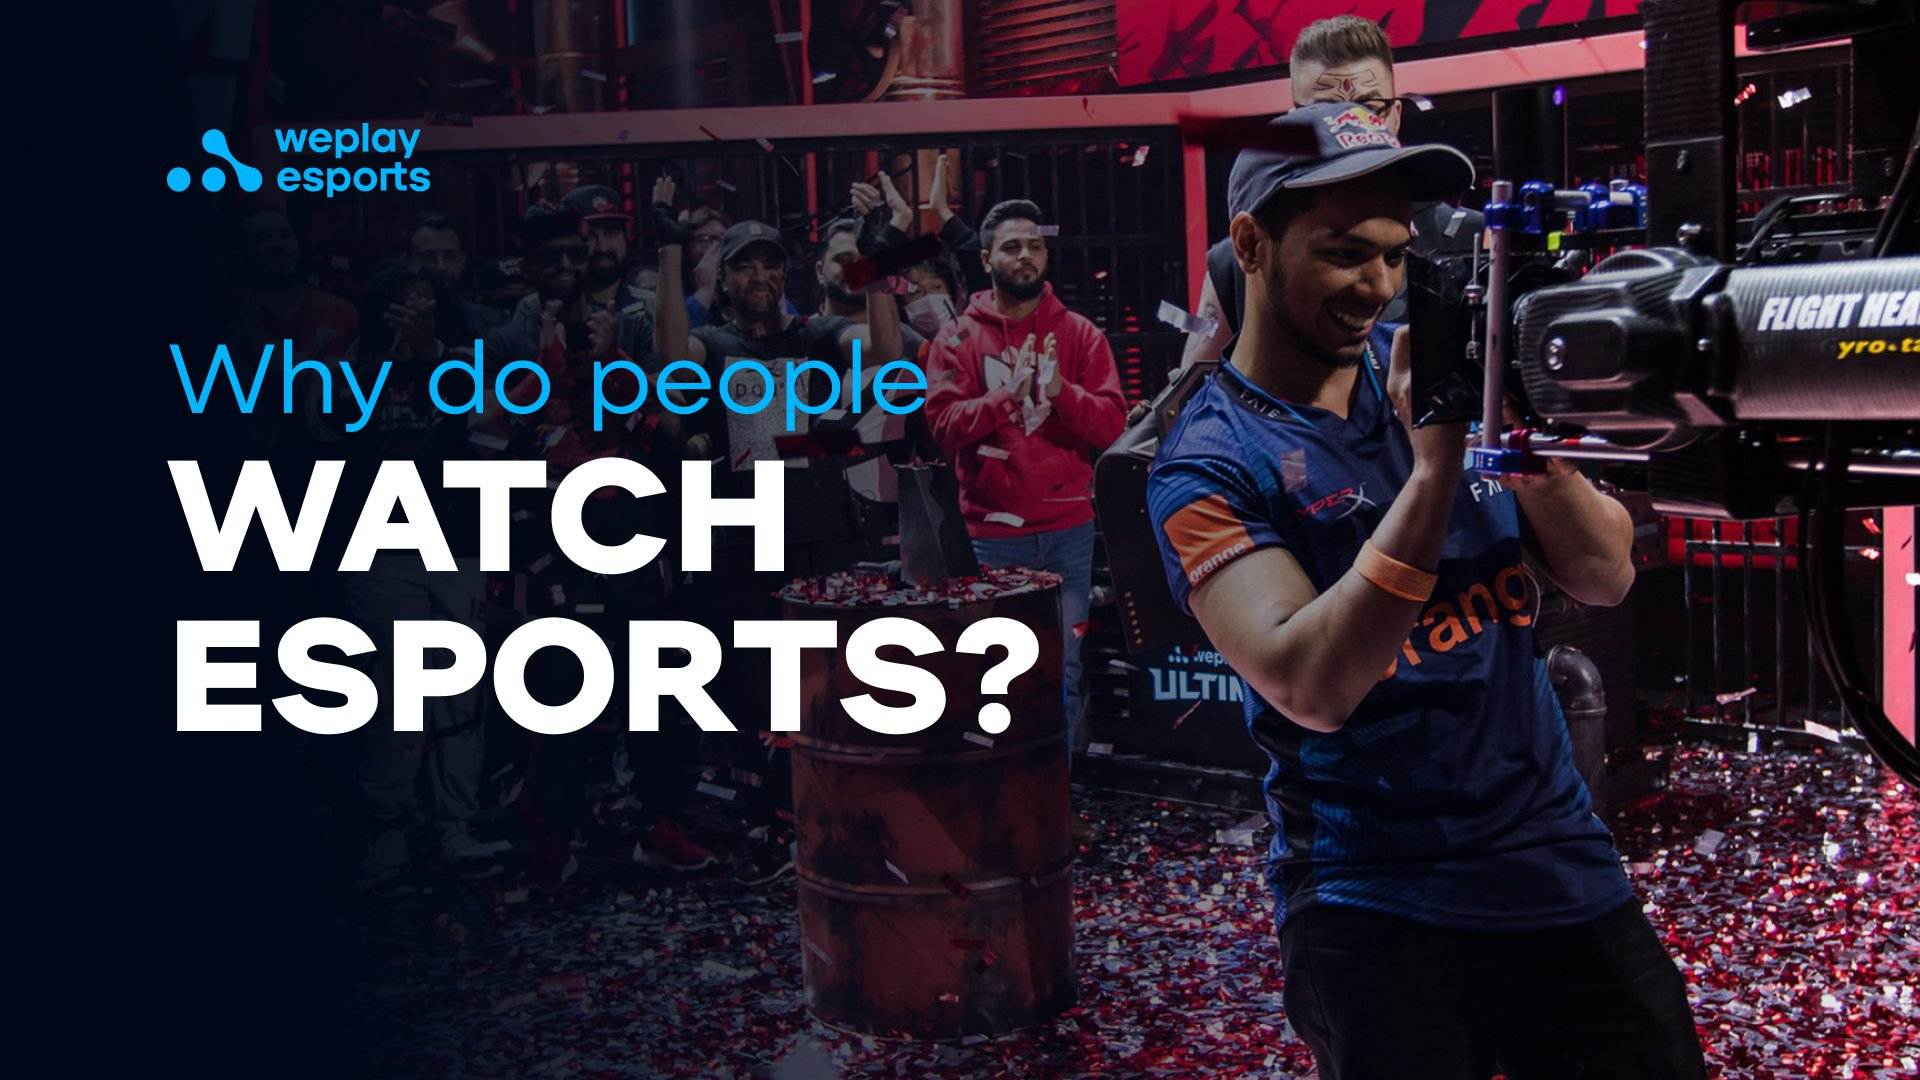 Why do people watch esports?